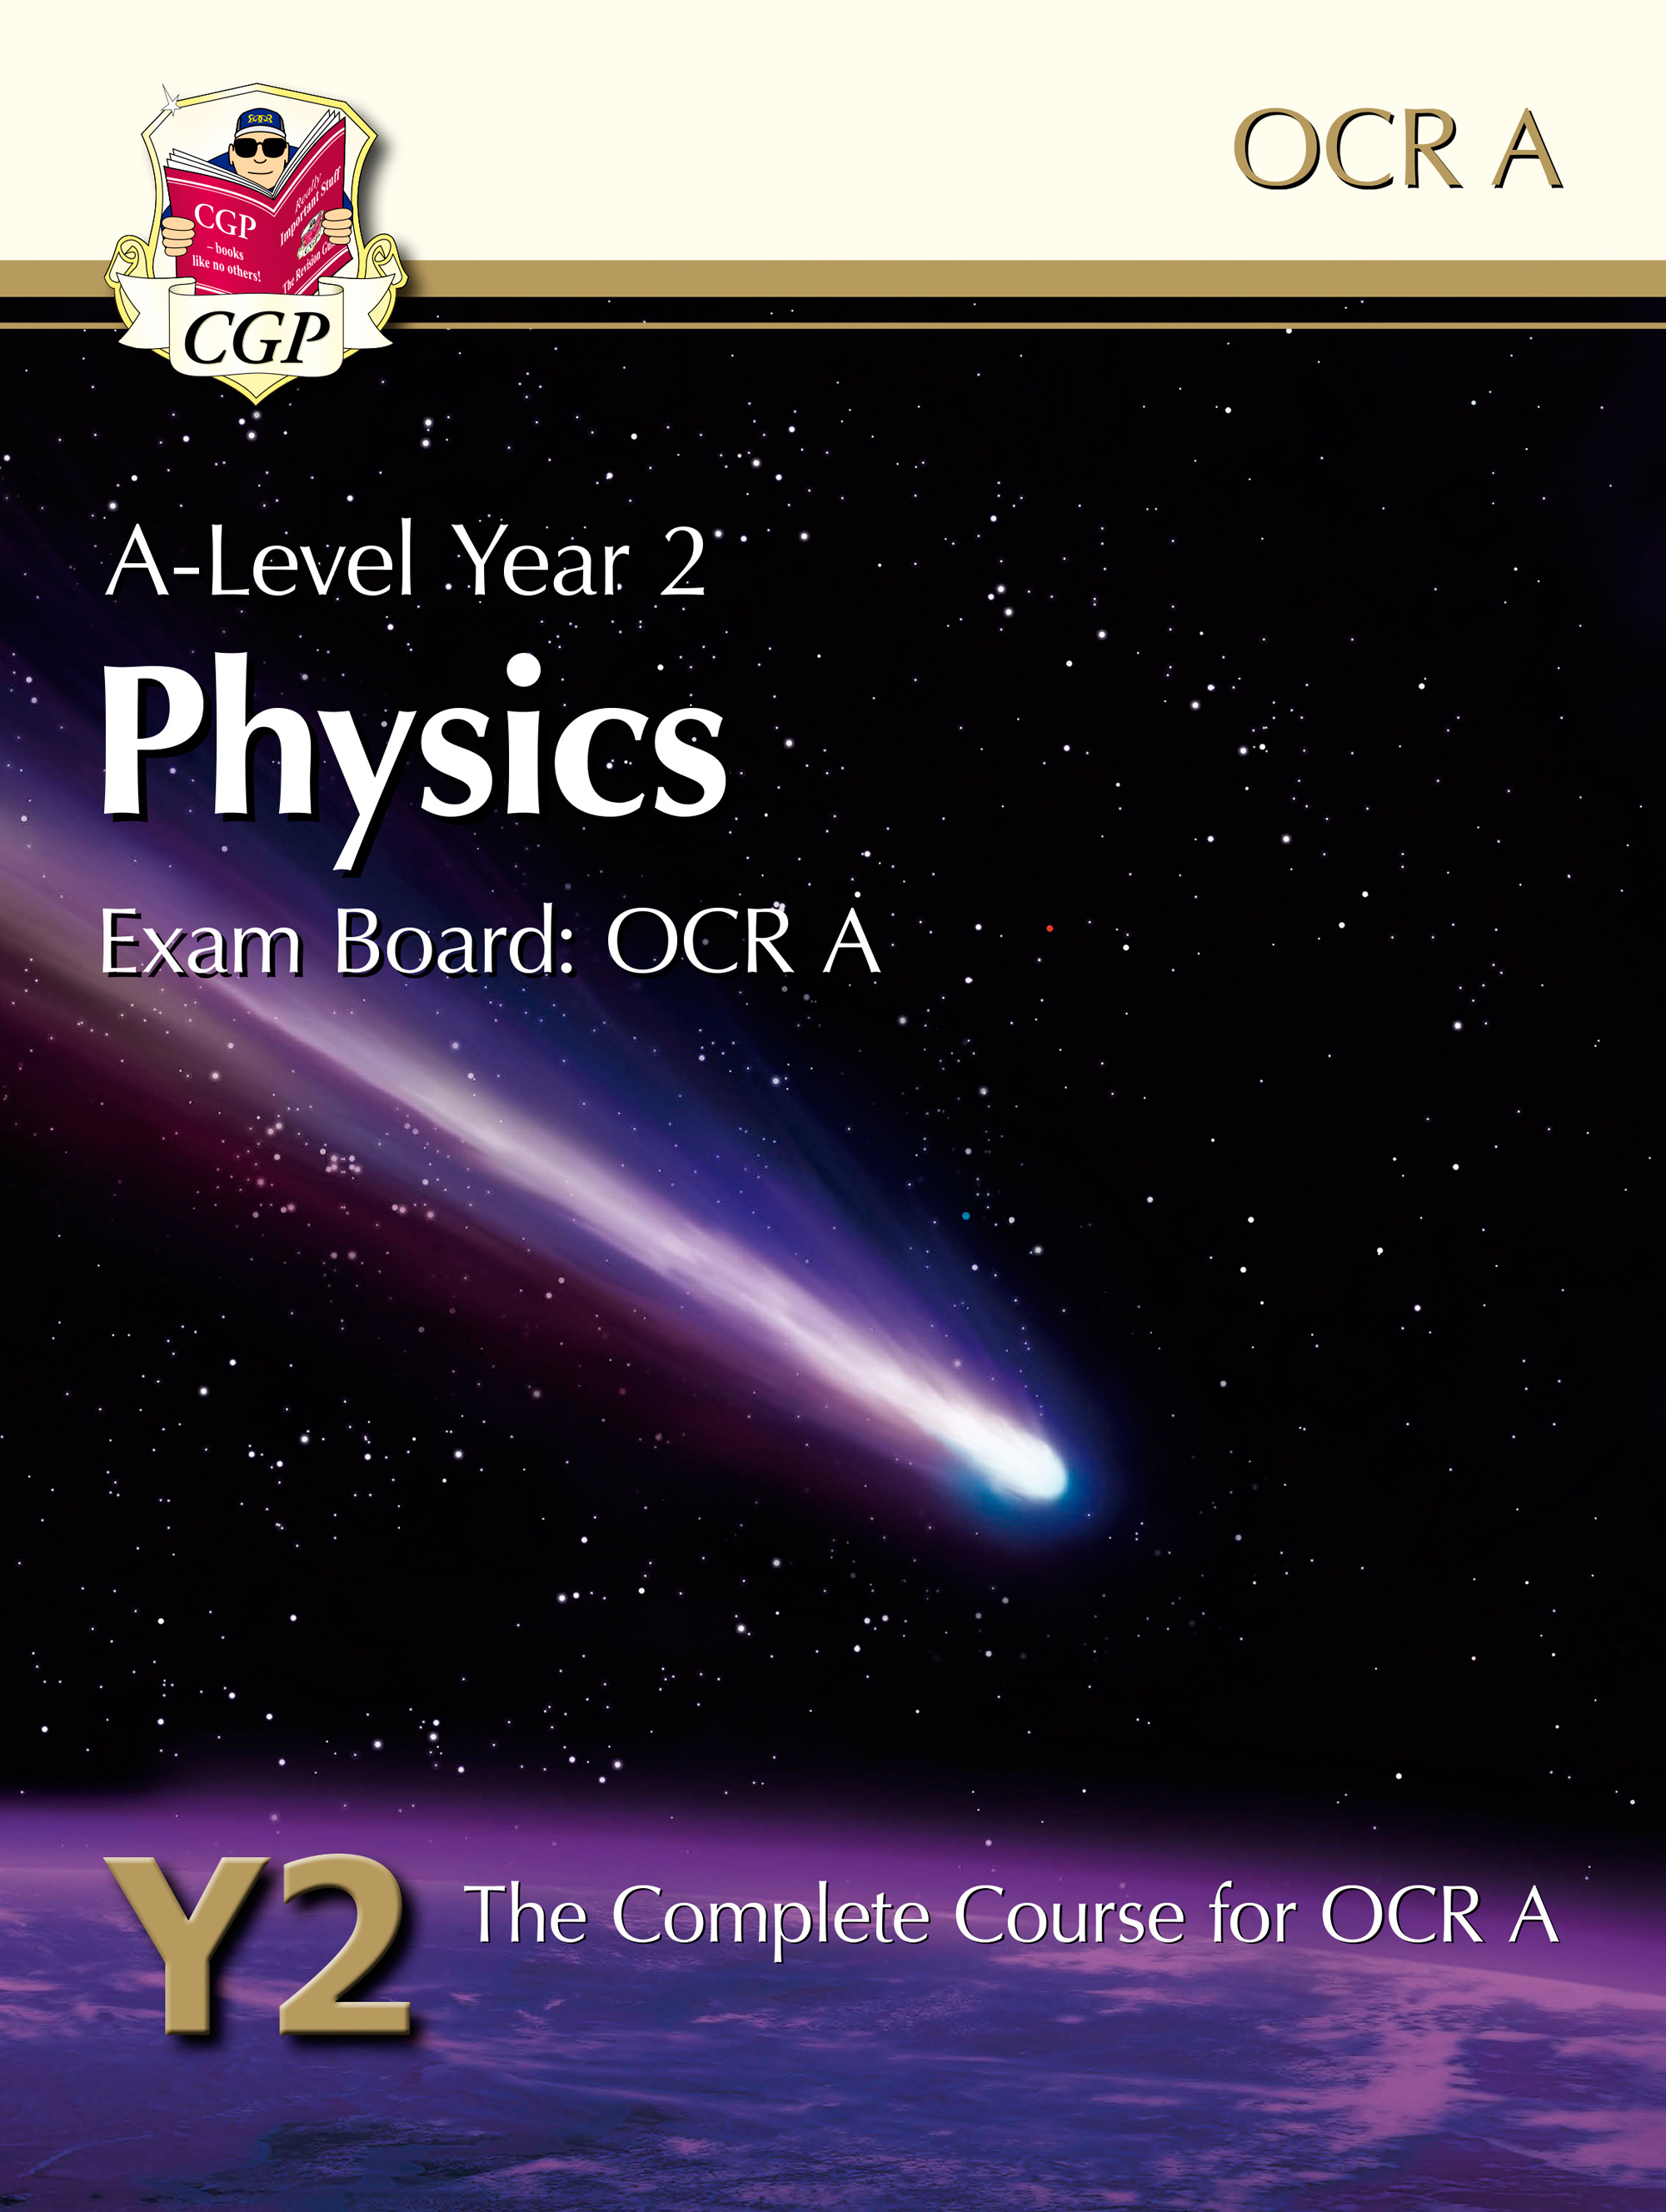 PRATB61DK - New A-Level Physics for OCR A: Year 2 Student Book